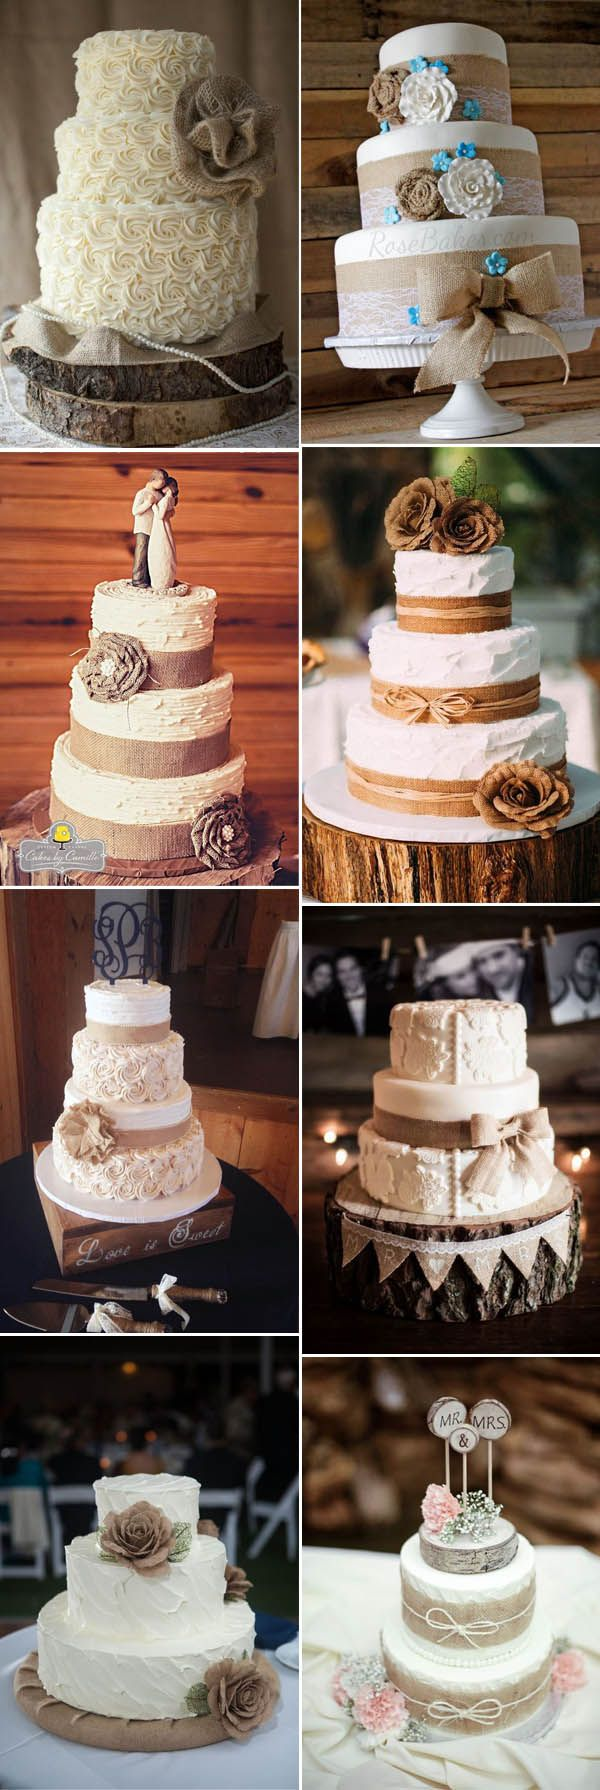 Wedding Cake Ideas For Country Wedding : The Most Complete Burlap Rustic Wedding Ideas For Your ...